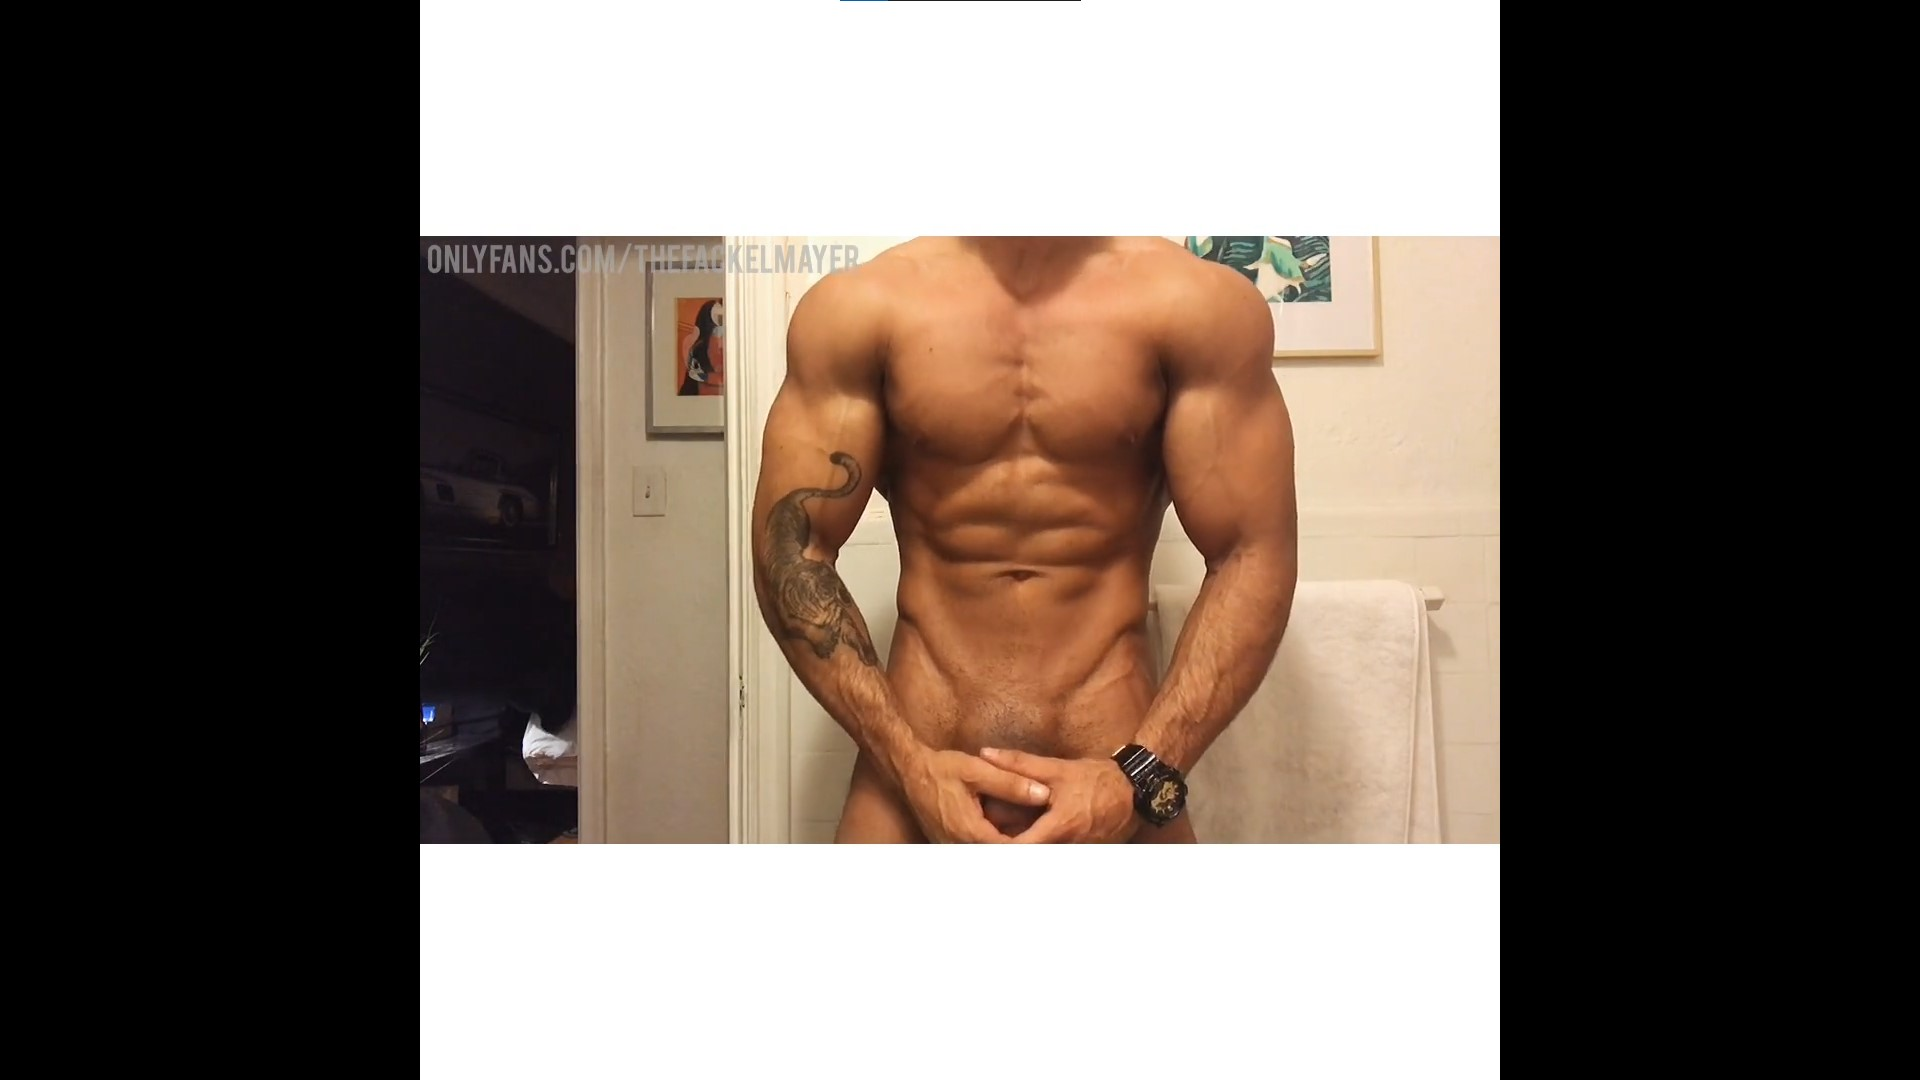 Showing off my muscles and jerking my thick cock till I cum - TheFackelmayer